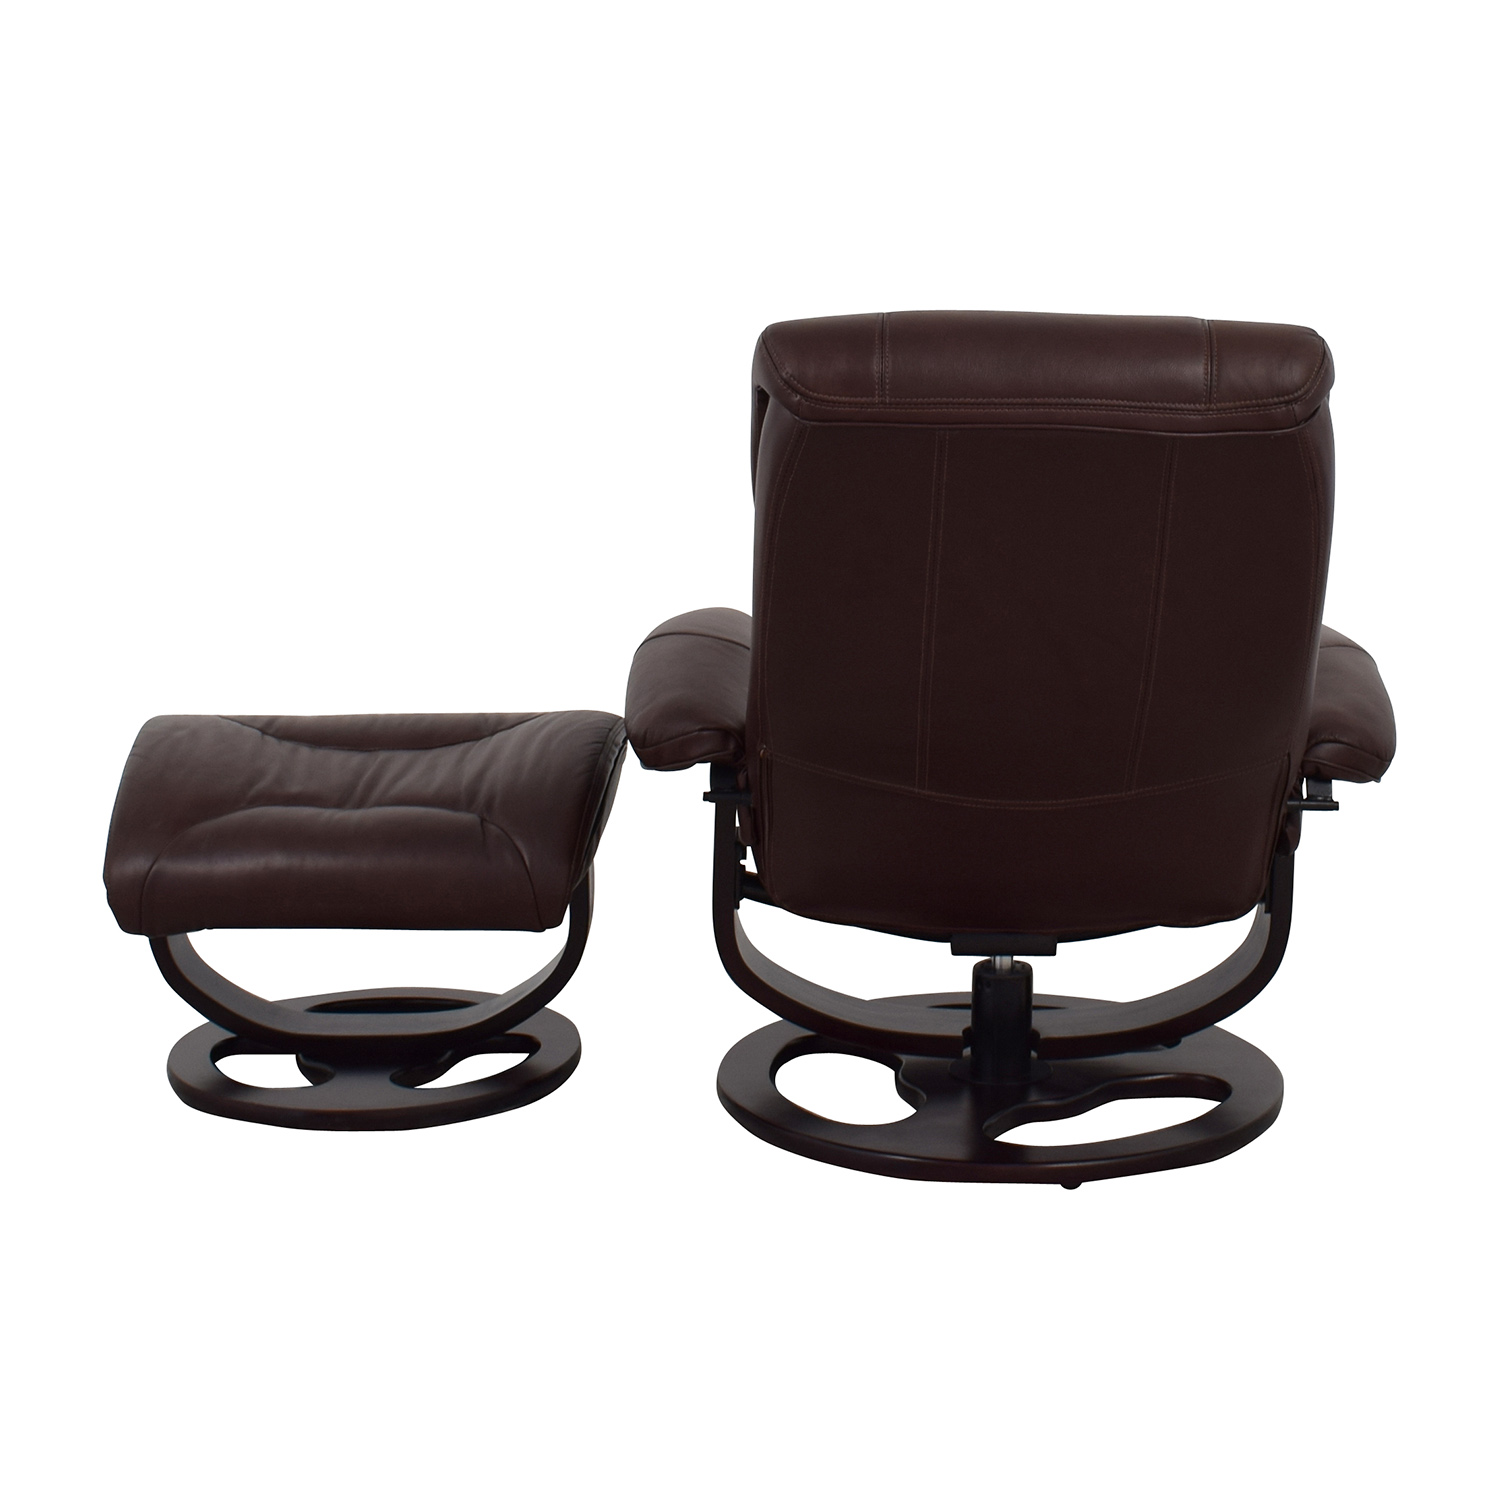 Macys Macys Aby Brown Leather Recliner Chair & Ottoman Brown